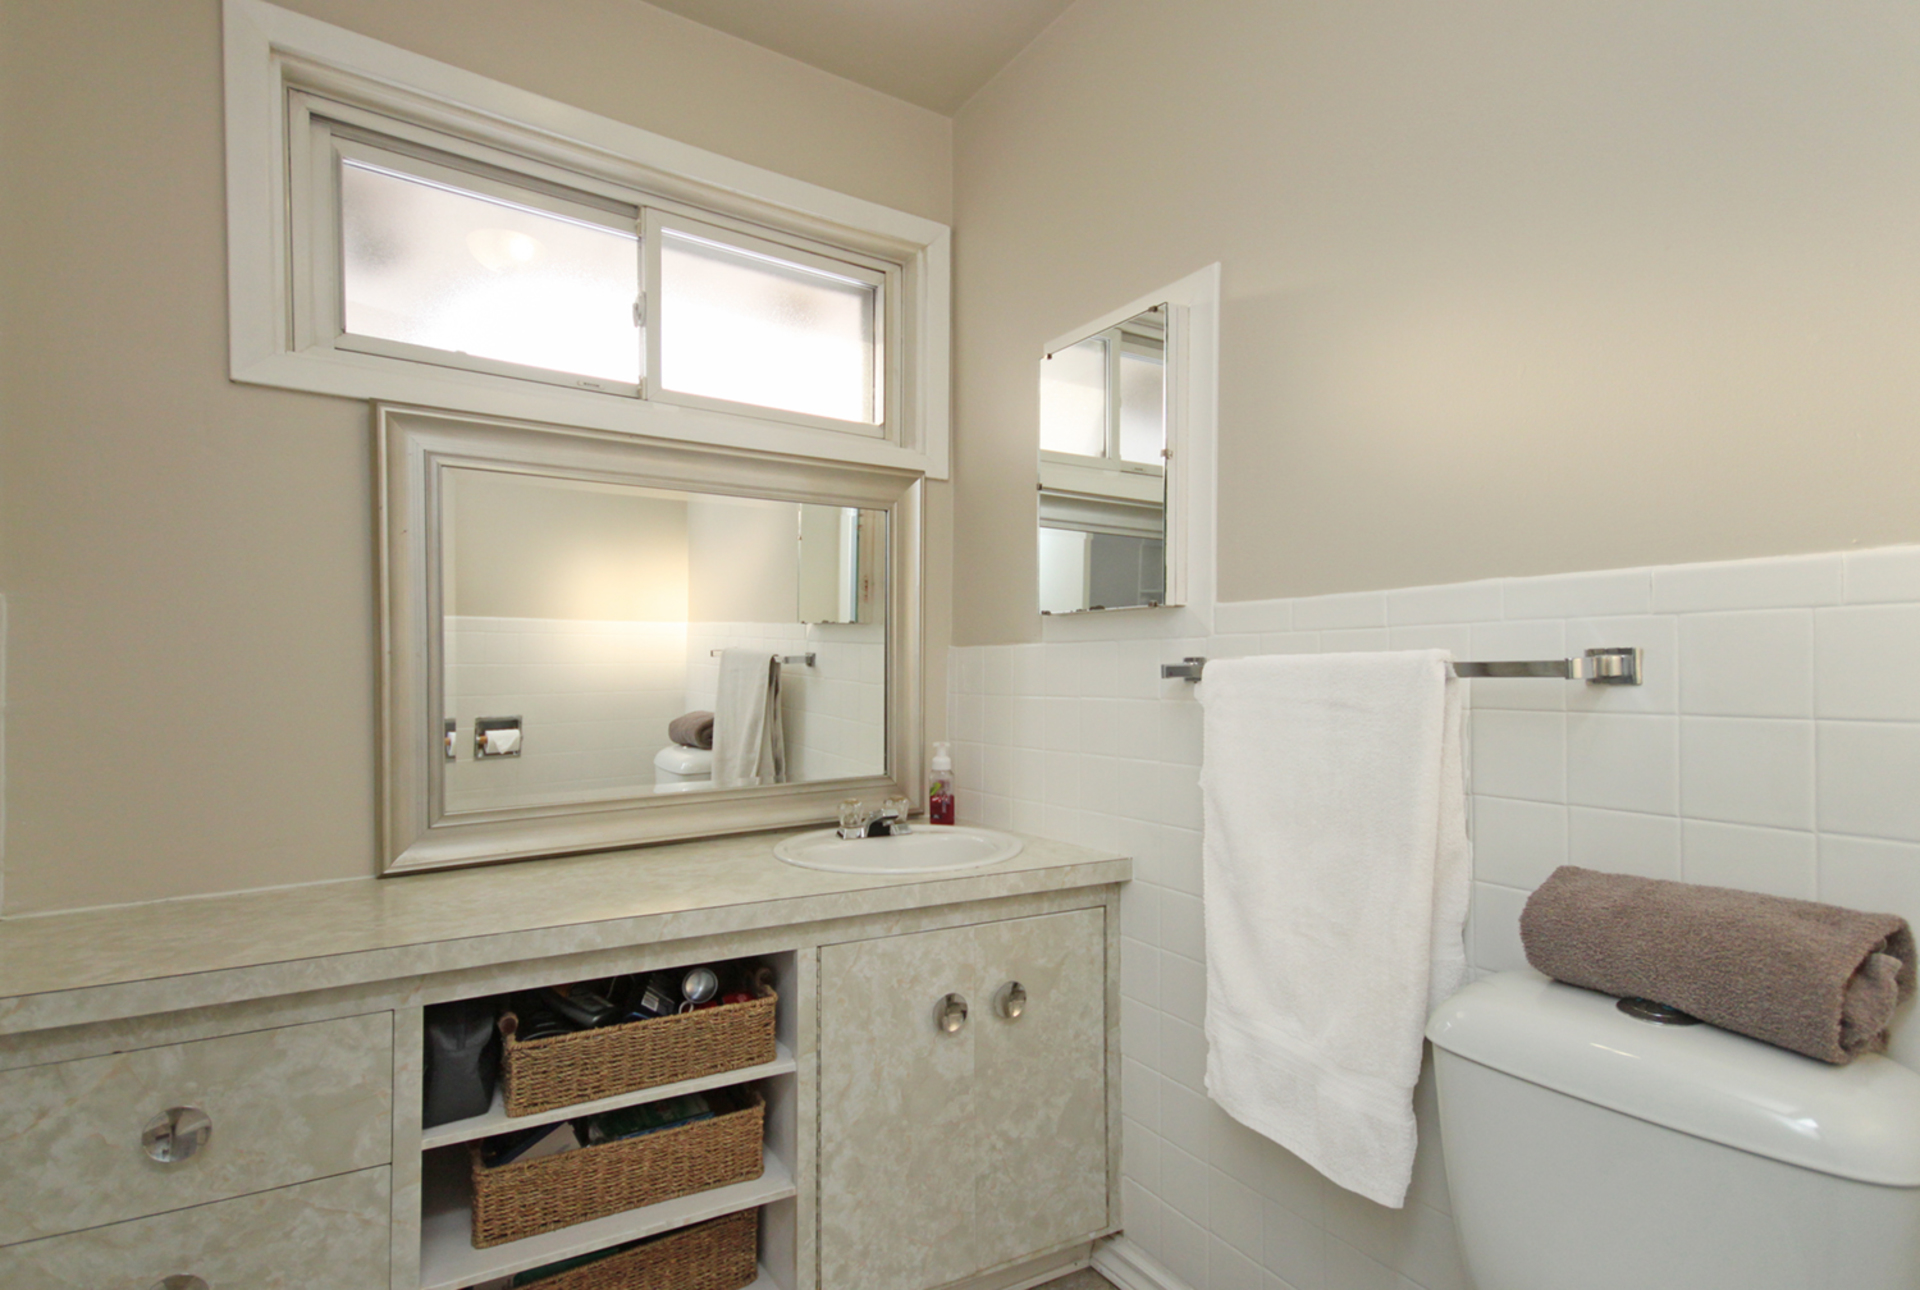 4 Piece Bathroom at 53 Dukinfield Crescent, Parkwoods-Donalda, Toronto